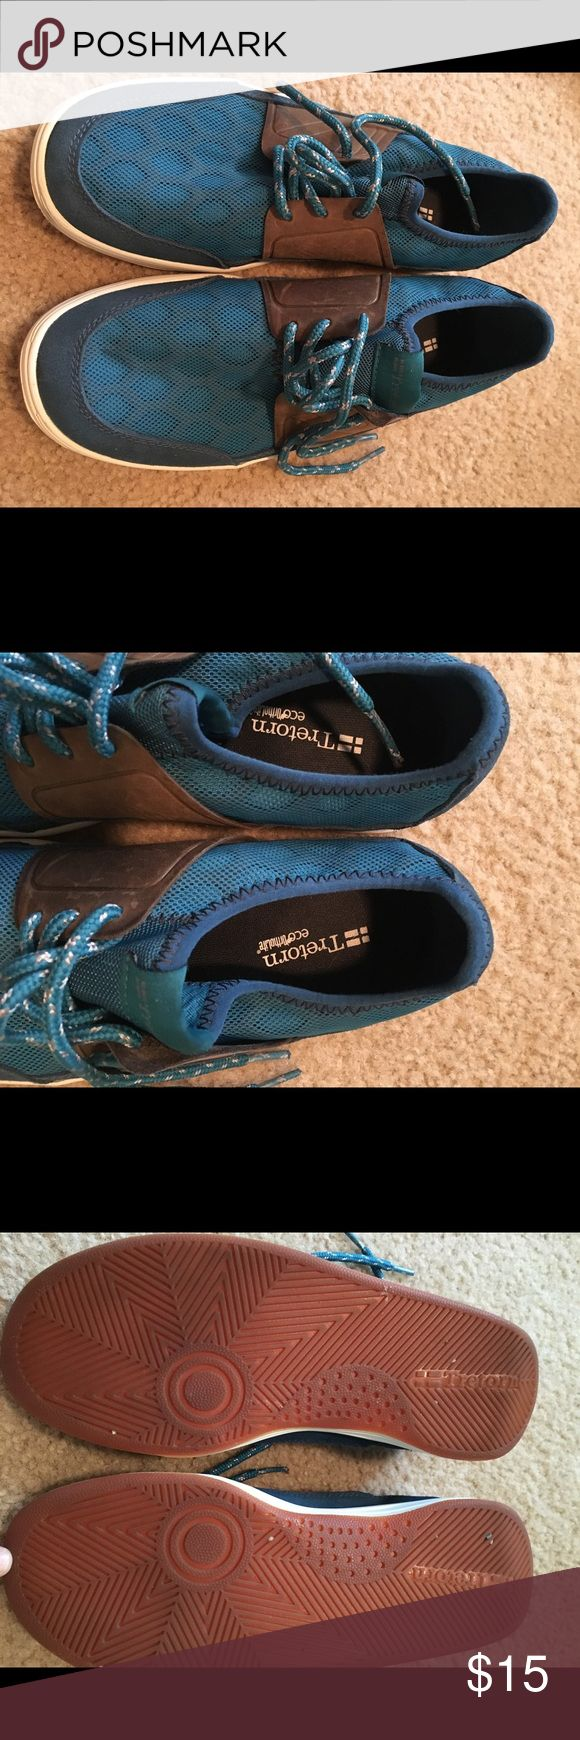 Tretorn Teal Tennis Shoes Tretorn Teal Shoes Size 7. Really good used condition. Only worn a few times. Tretorn Shoes Athletic Shoes